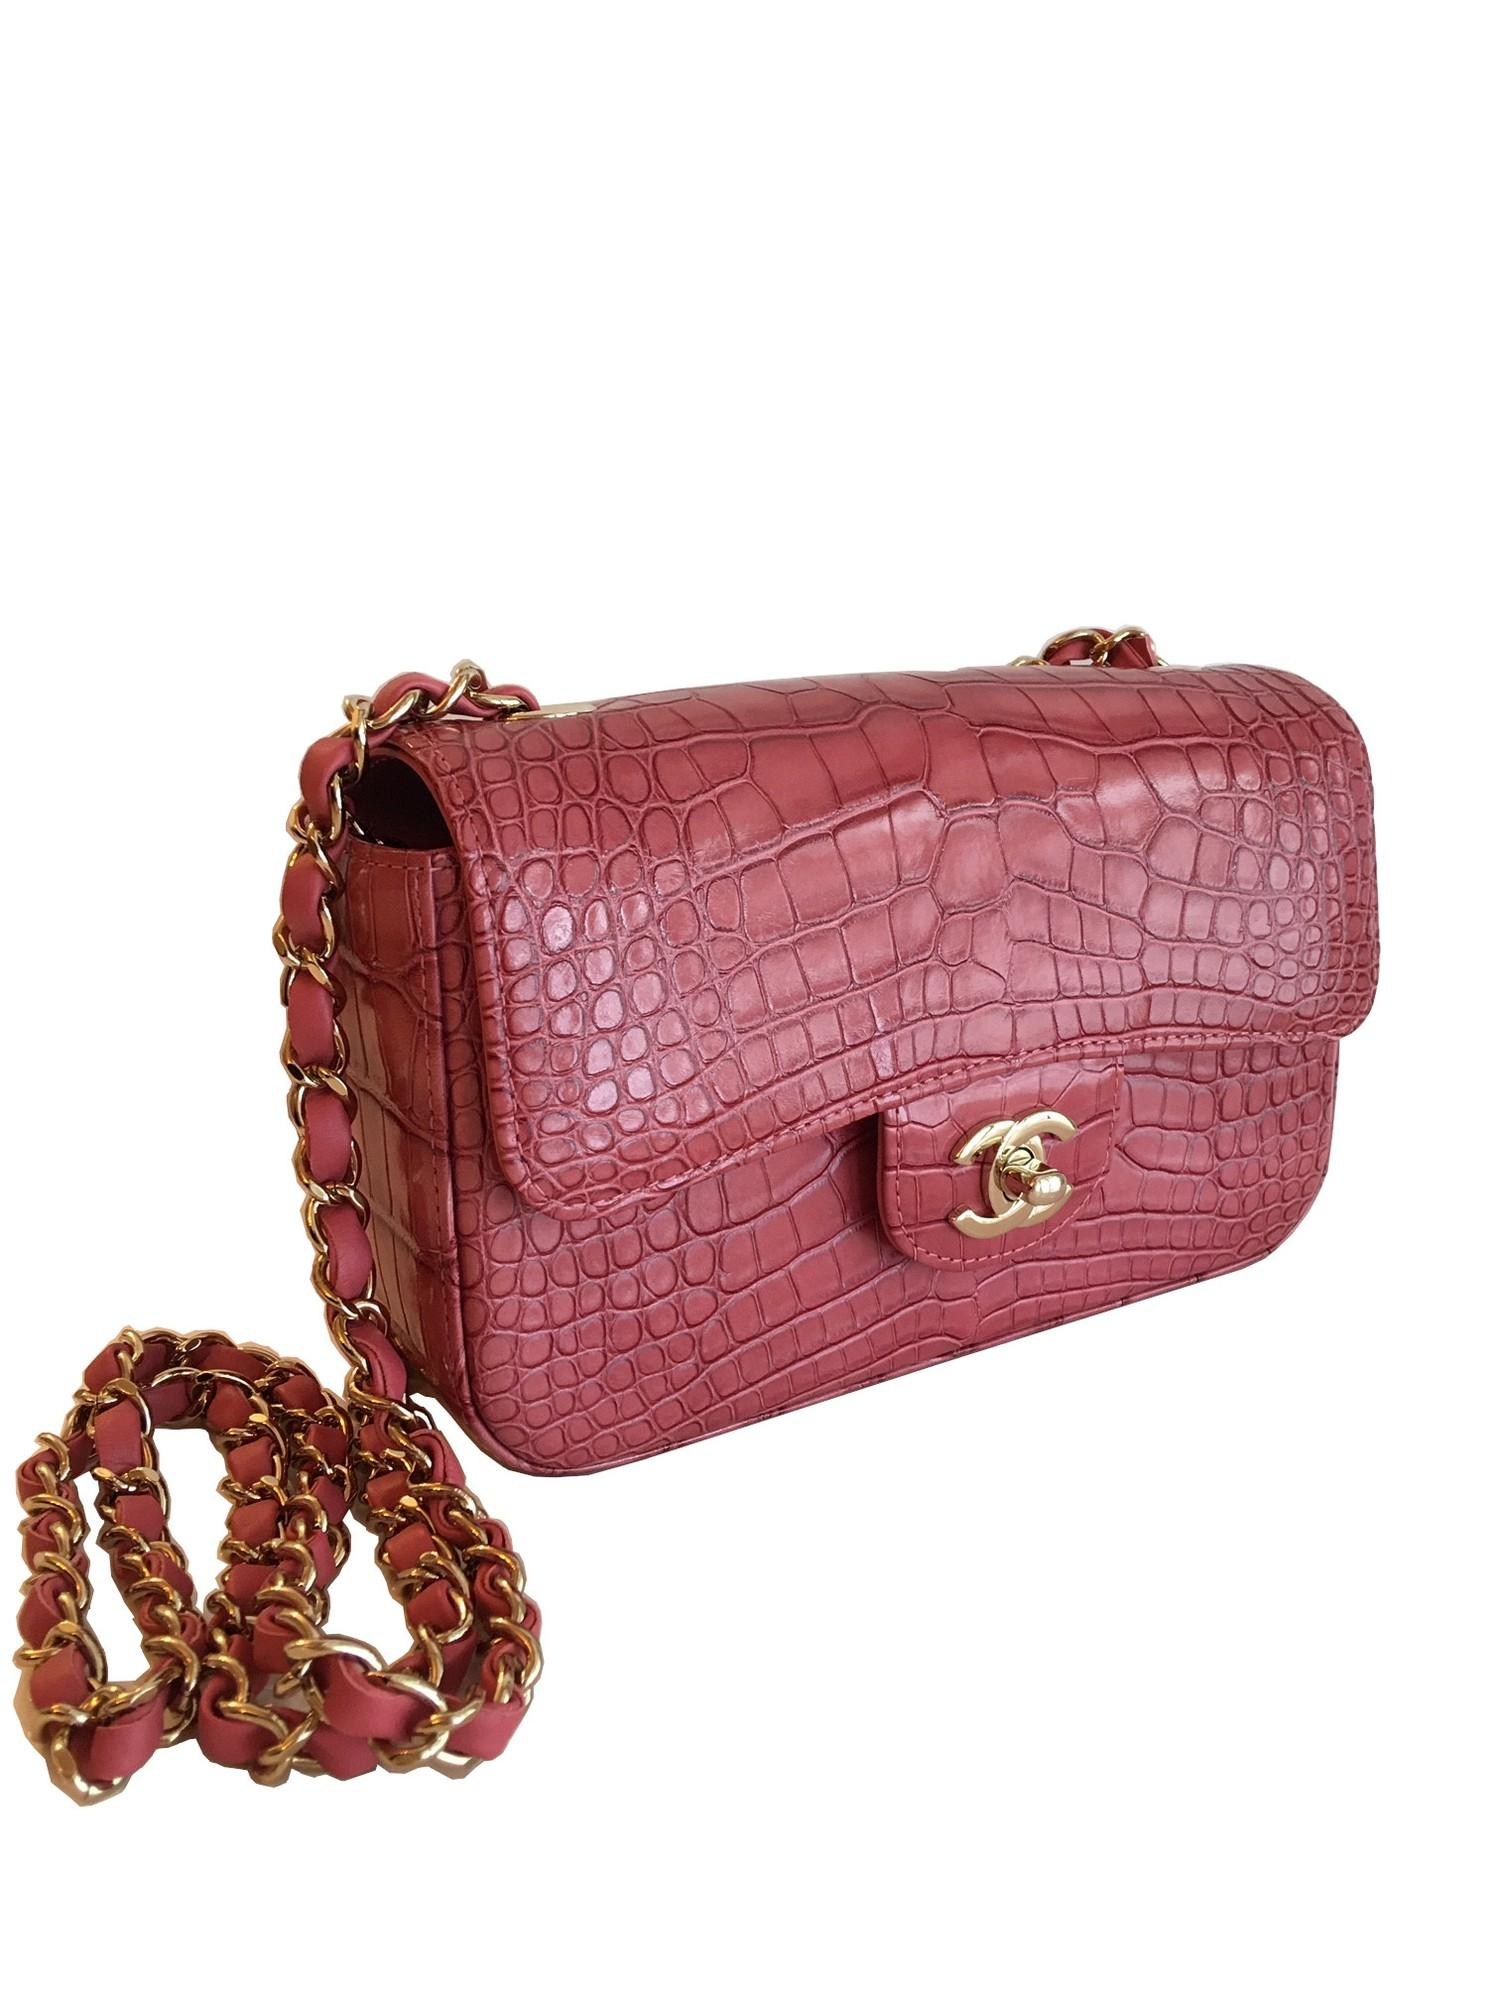 A Chanel Classic Flap in Dusky Pink Crocodile leather with Gold Hardware is instantly recognizable